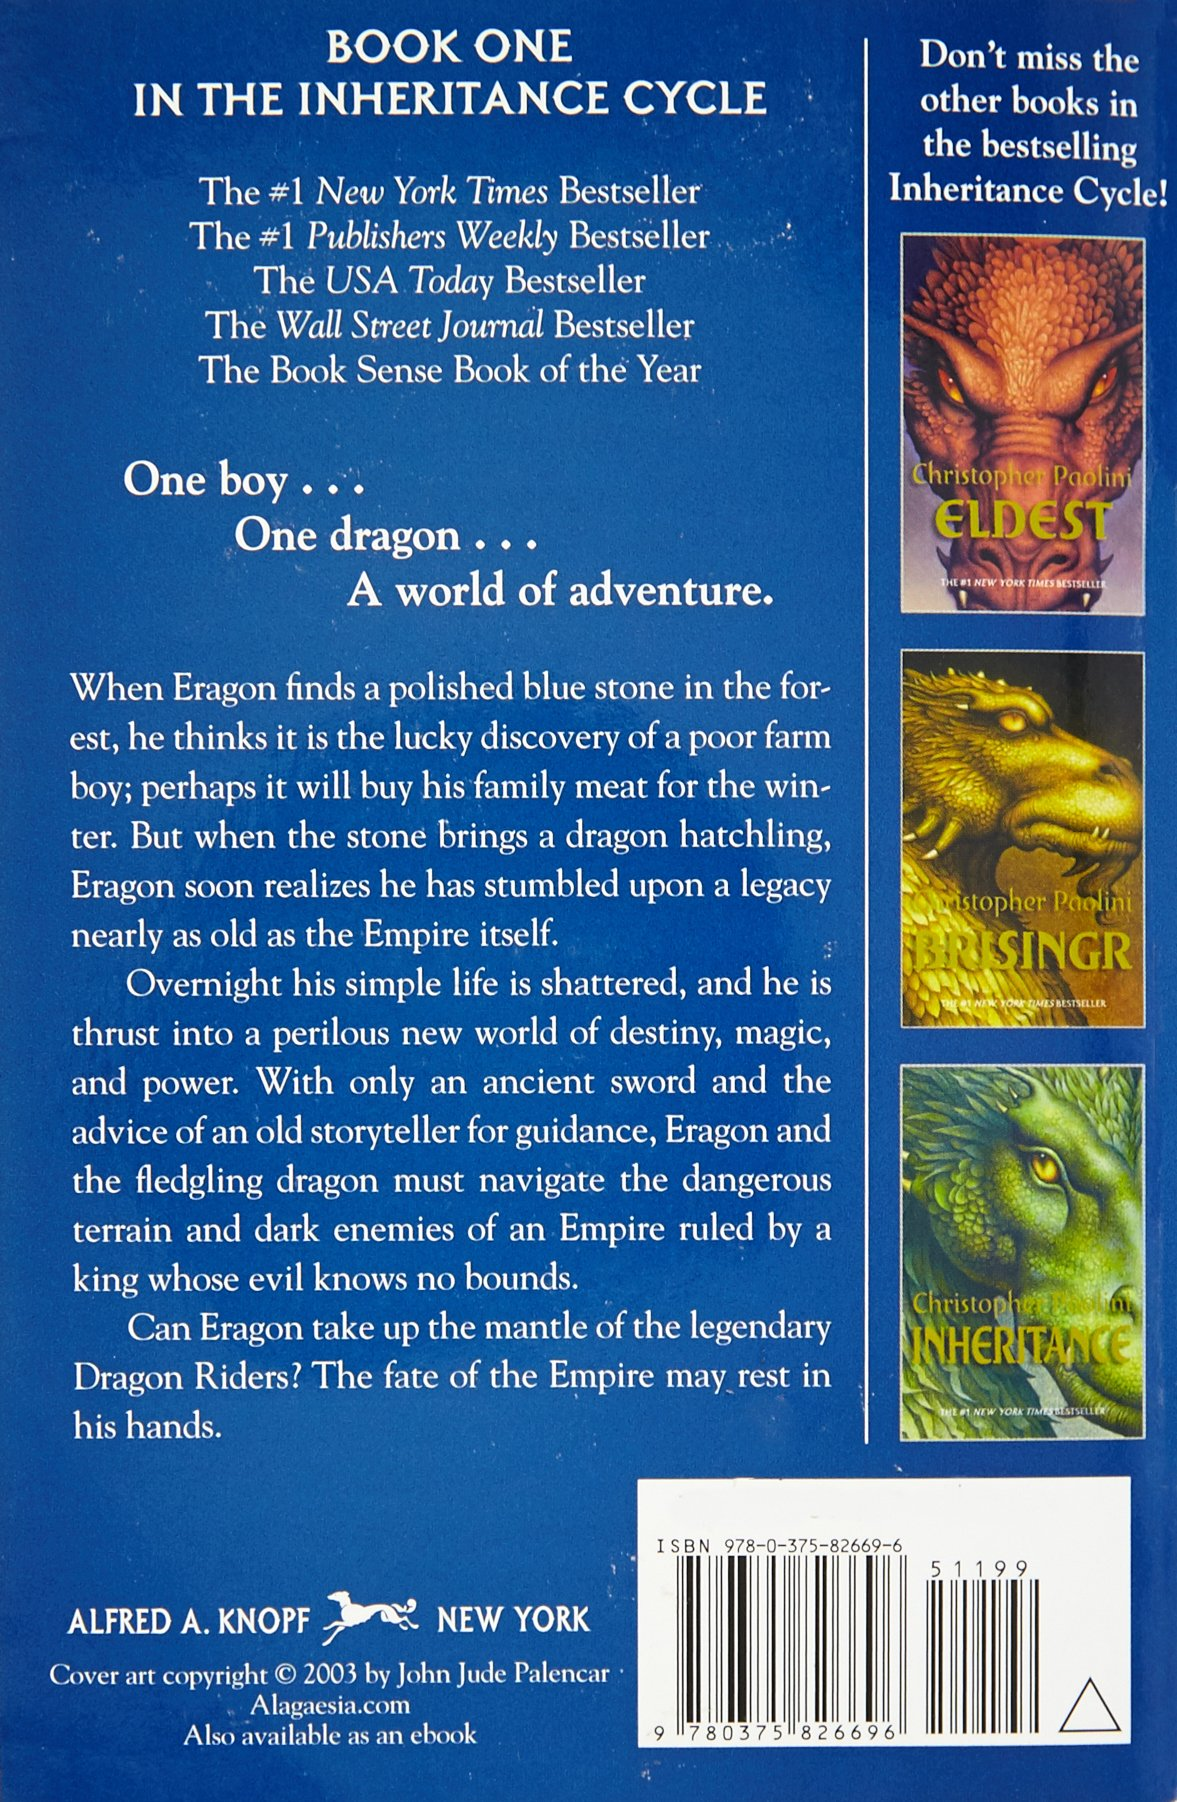 Eragon 1 book report best academic essay writing for hire